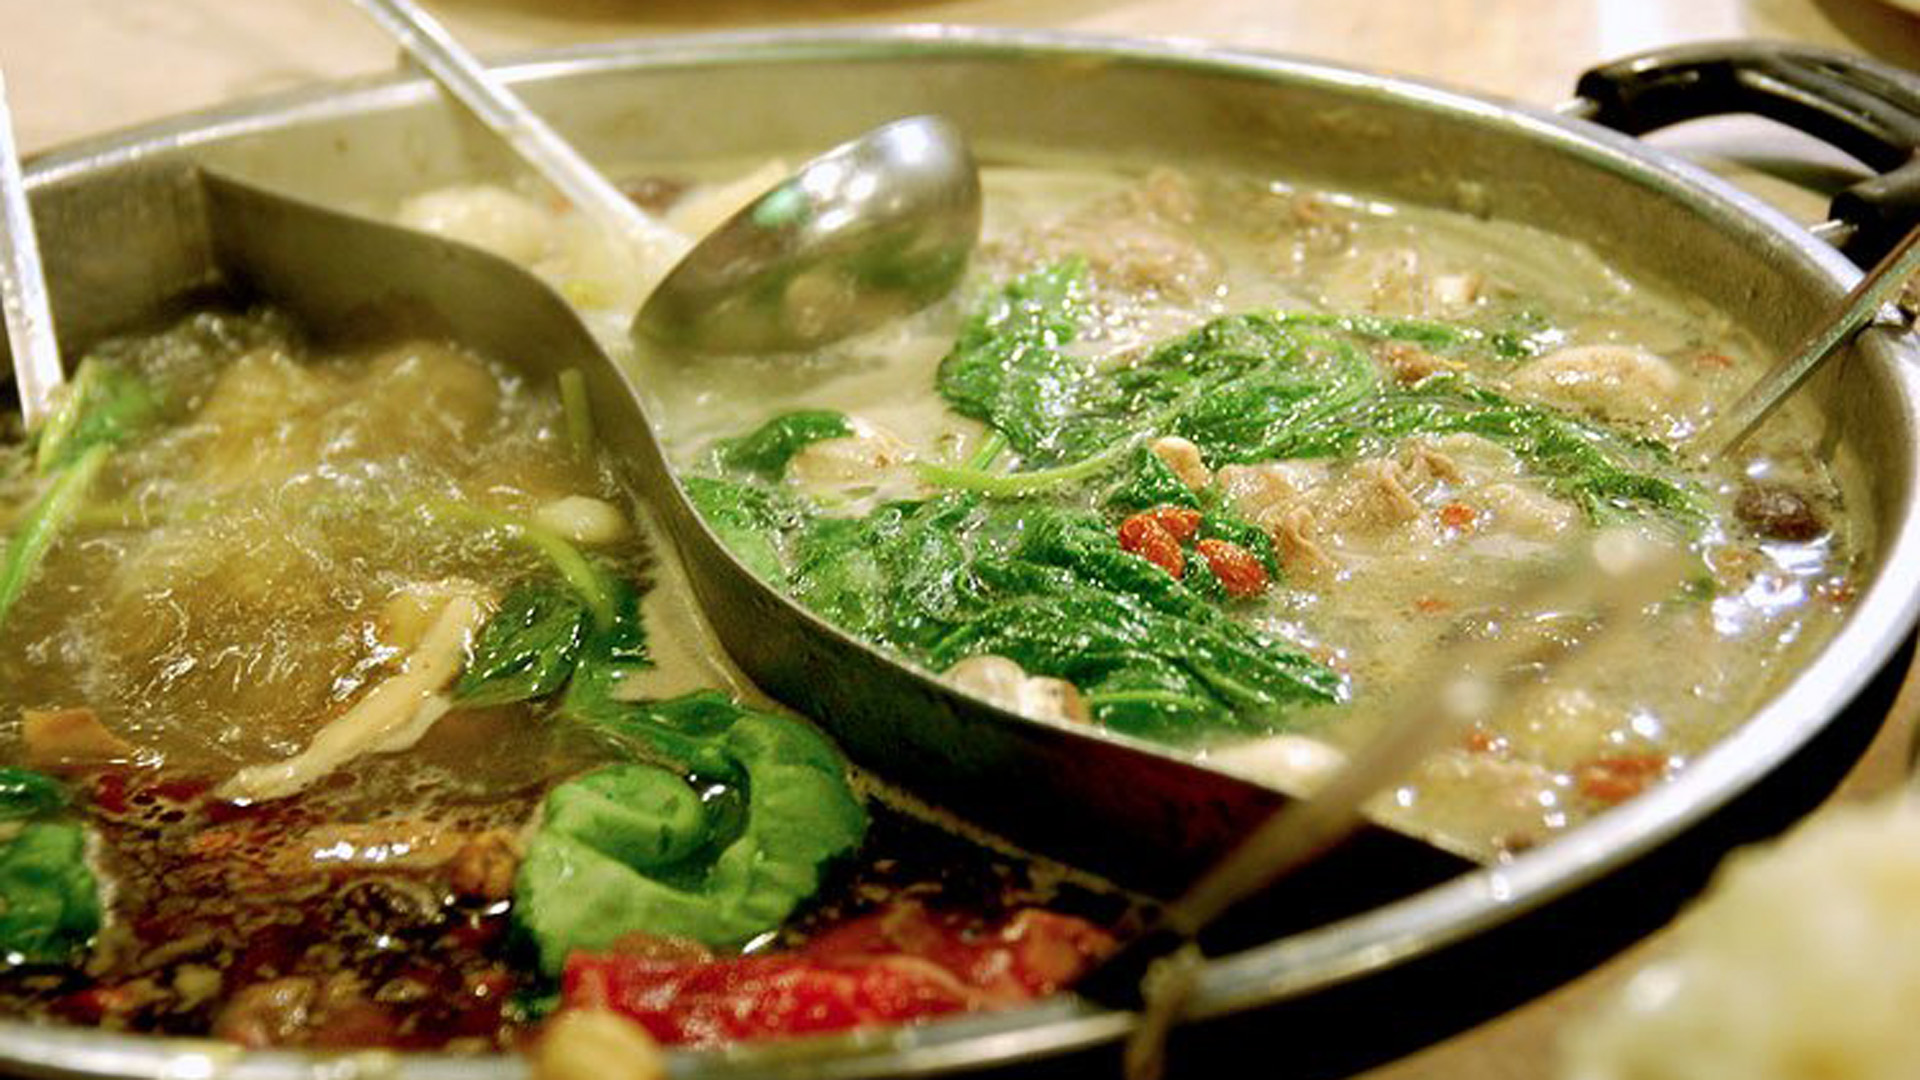 photo of a large hot pot divided into the shape of a yin-yang symbol